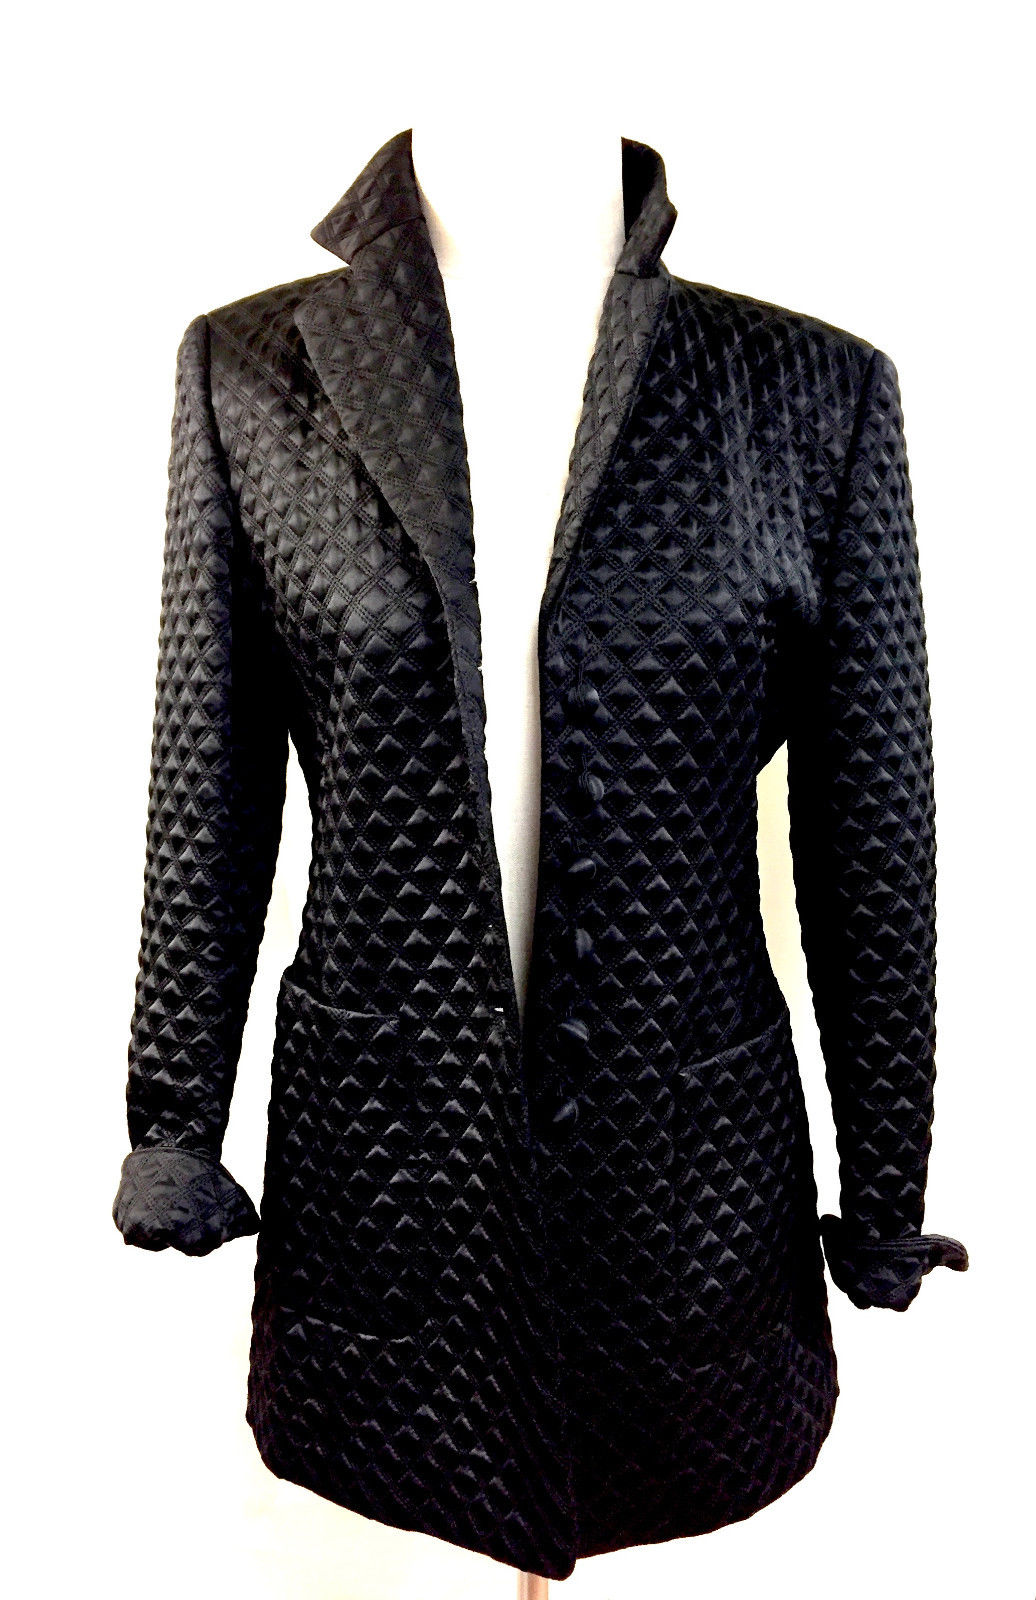 bisbiz.com ESCADA ELEMENTS  Black Diamond-Quilted Silk-Blend Evening Jacket Blazer Size: EU 36 / US6 - Bis Designer Resale